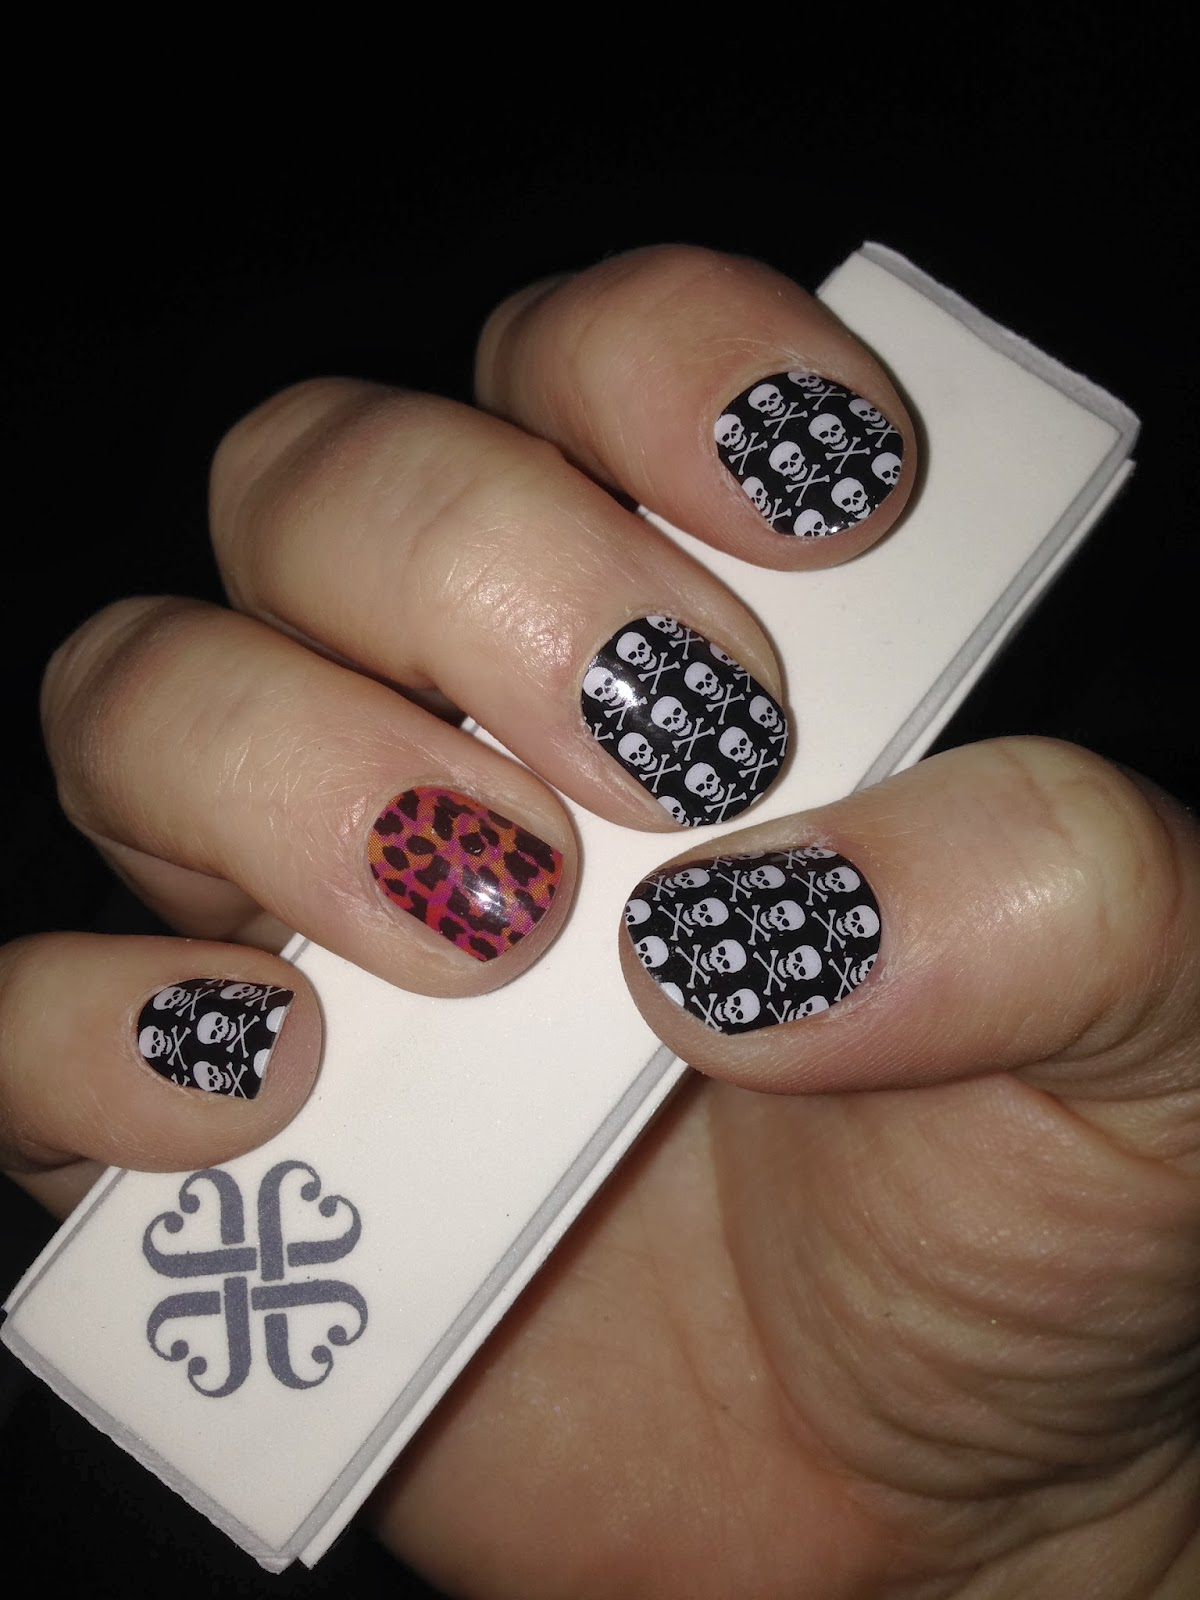 carriej.jamberrynails.net